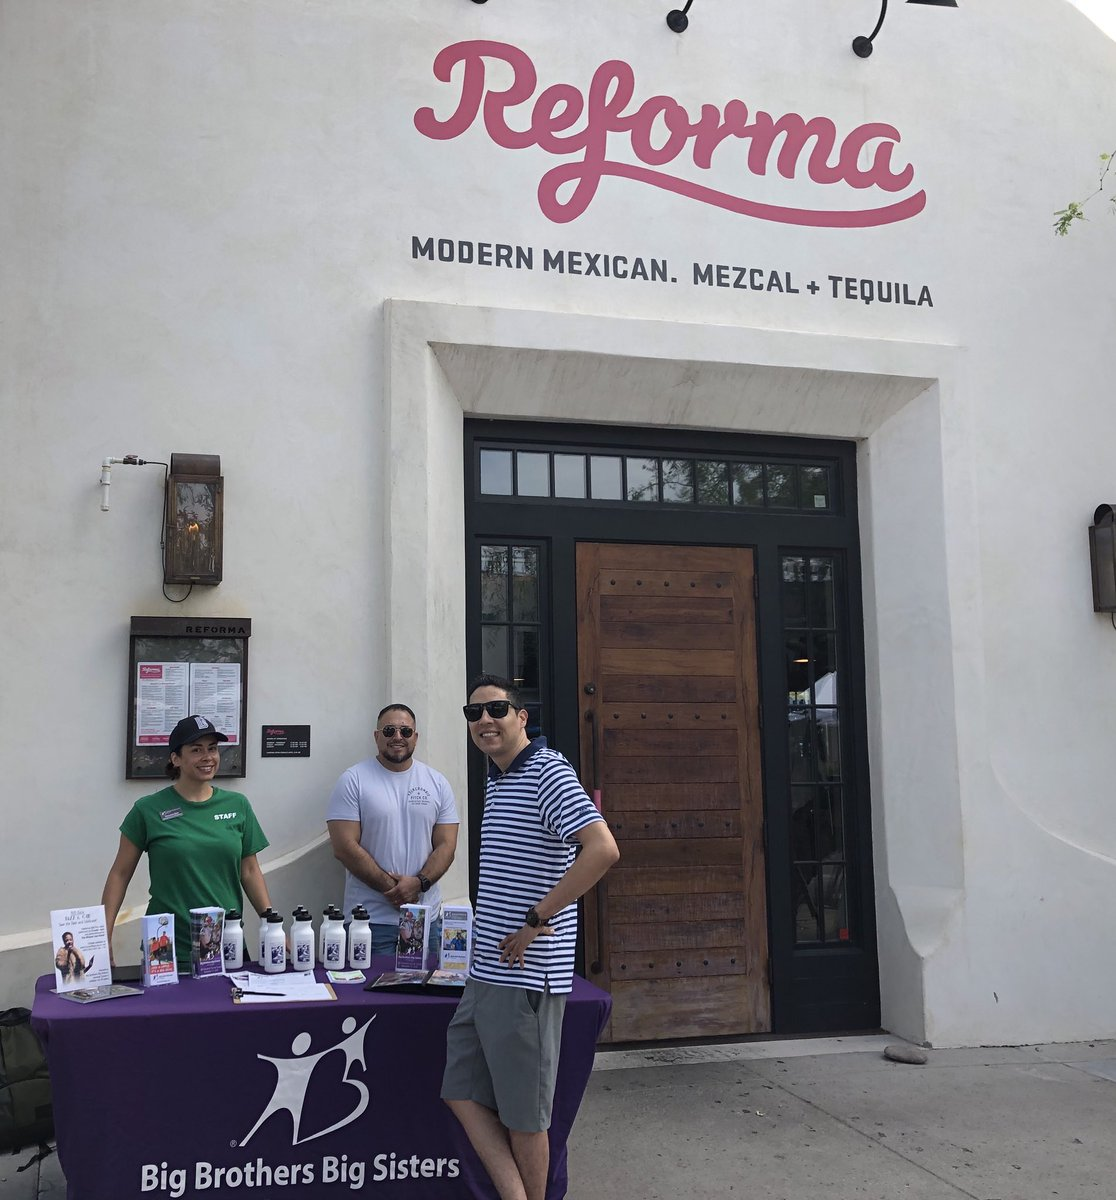 Come say hello to our El Tour team this morning at Reforma Modern Mexican. Mezcal + Tequila from 10-12 at our Kick-Off Ride and information session.   Reforma will be opening early for us to have brunch and 10% of the proceeds go back to Big Brothers Big Sisters of Tucson. <br>http://pic.twitter.com/UfwEQd1hO8